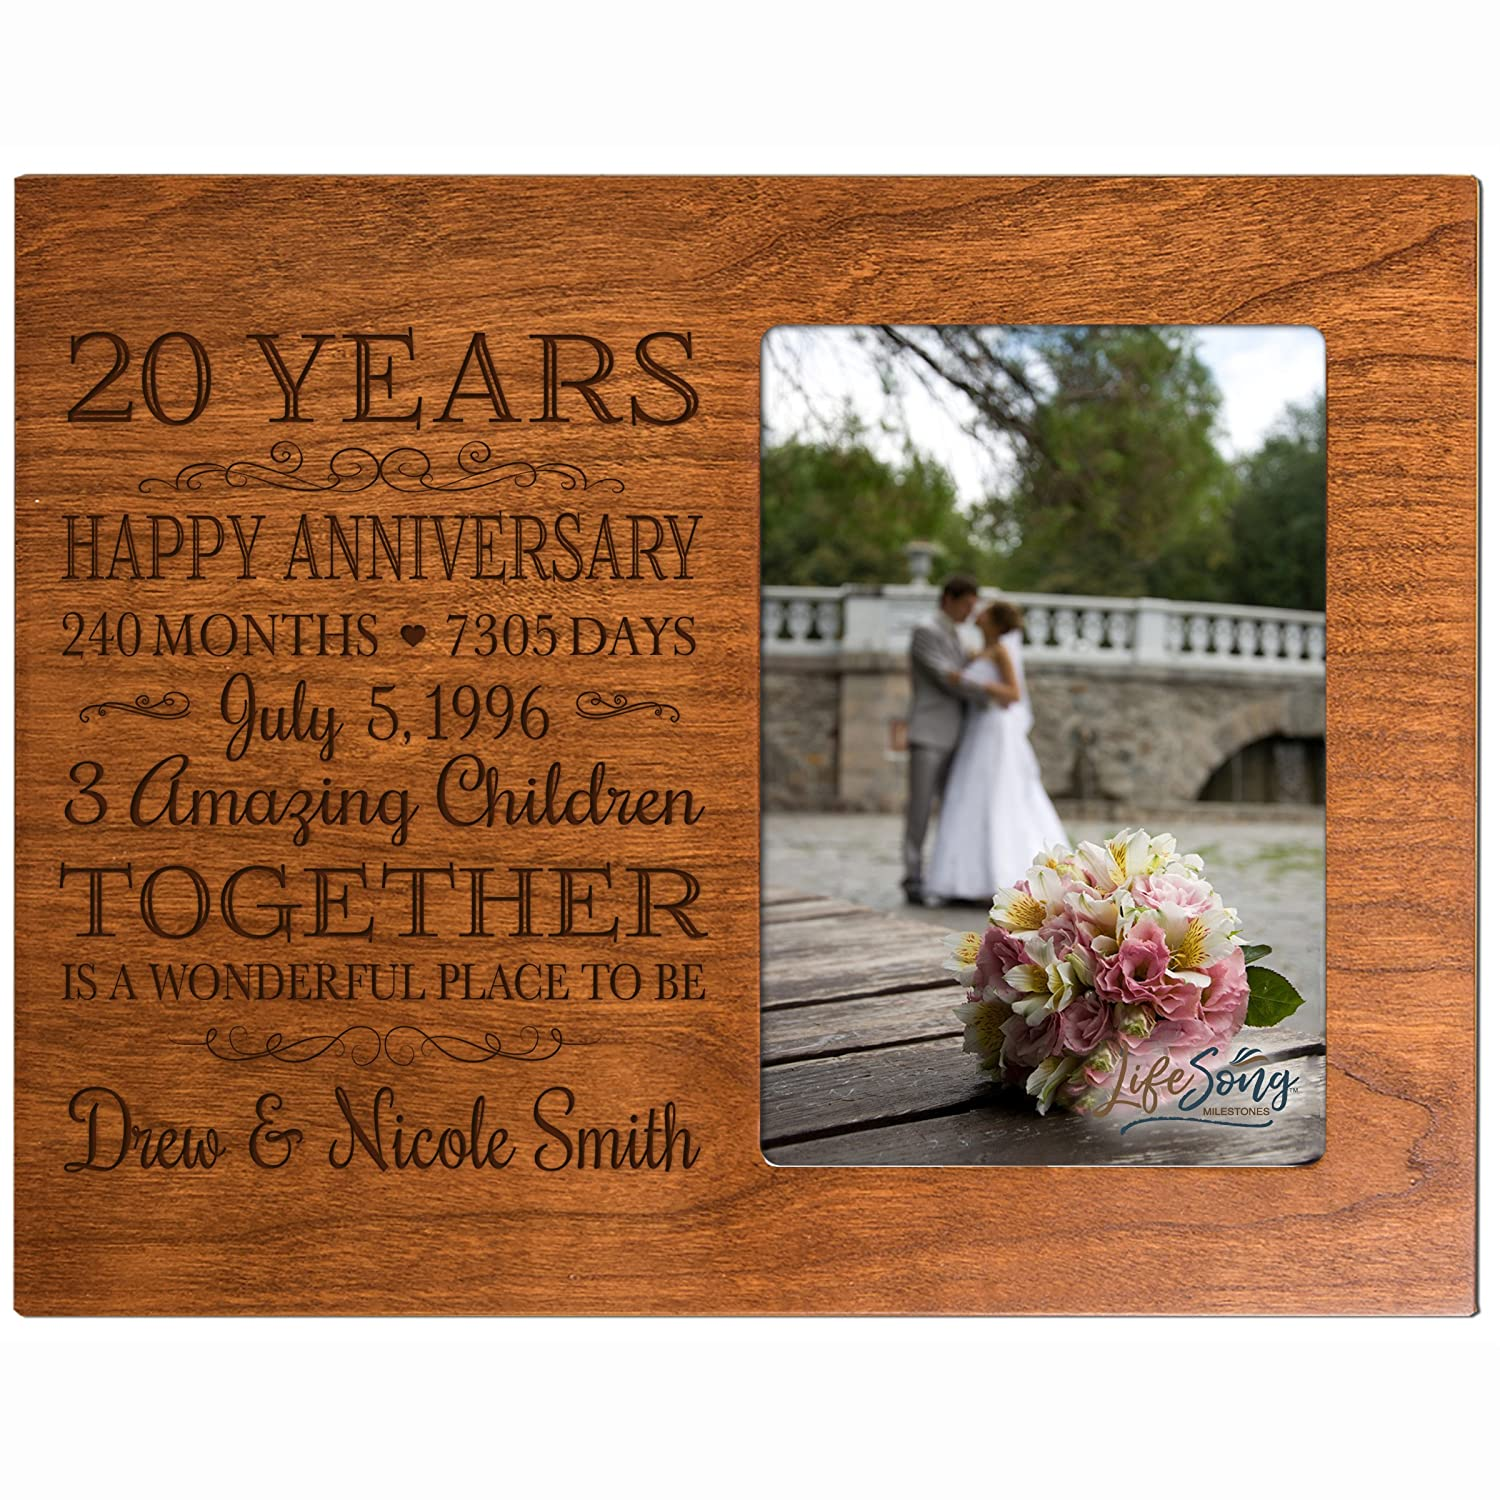 Personalized Twenty year anniversary gift for her him couple Custom Engraved wedding gift for husband wife girlfriend boyfriend photo frame holds 4x6 photo by LifeSong Milestones (black) 69315